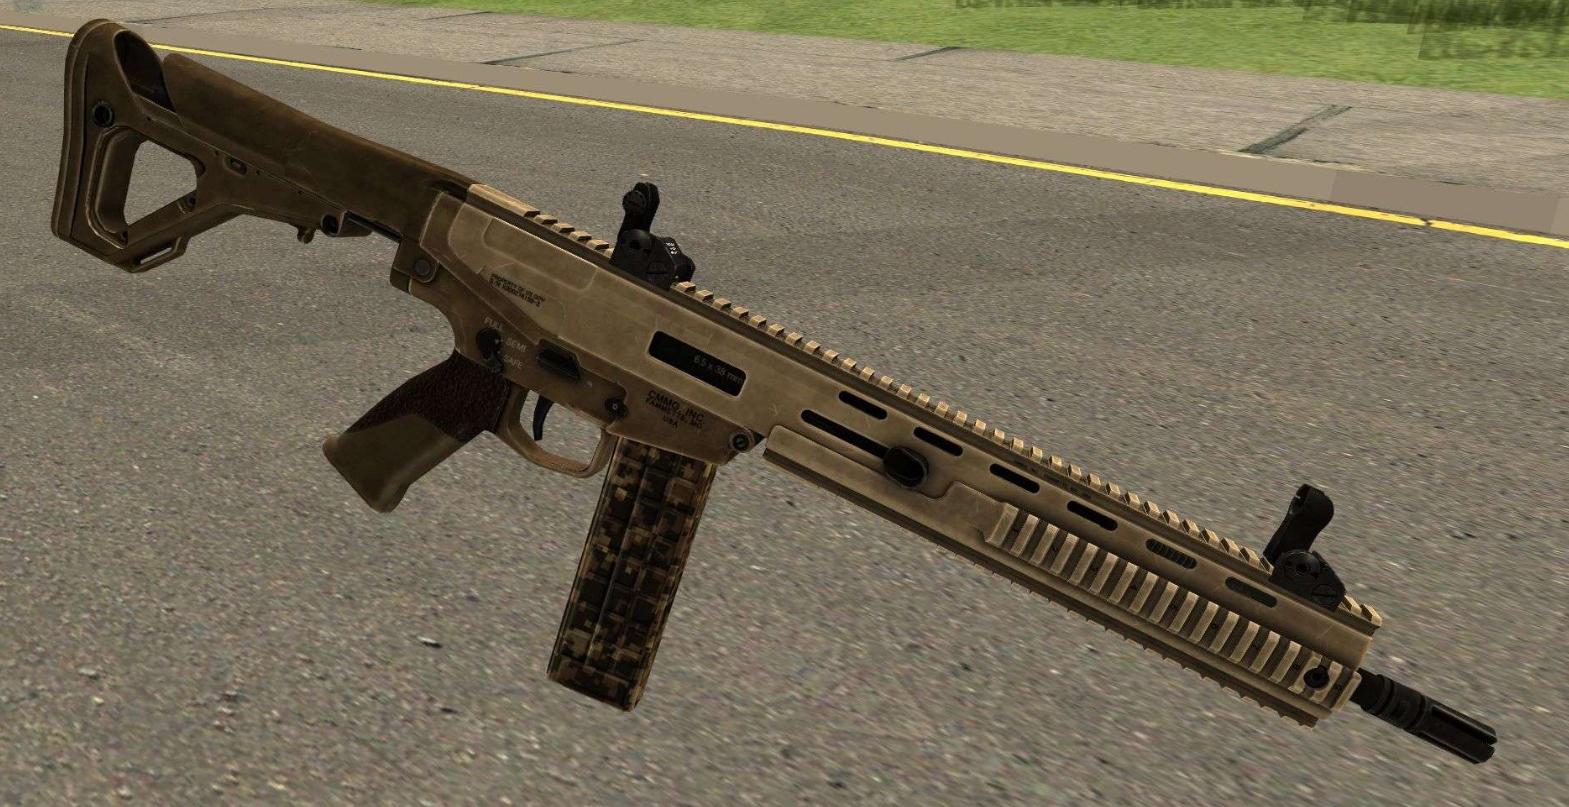 Top 10] Arma 3 Best Weapons For Kills   GAMERS DECIDE